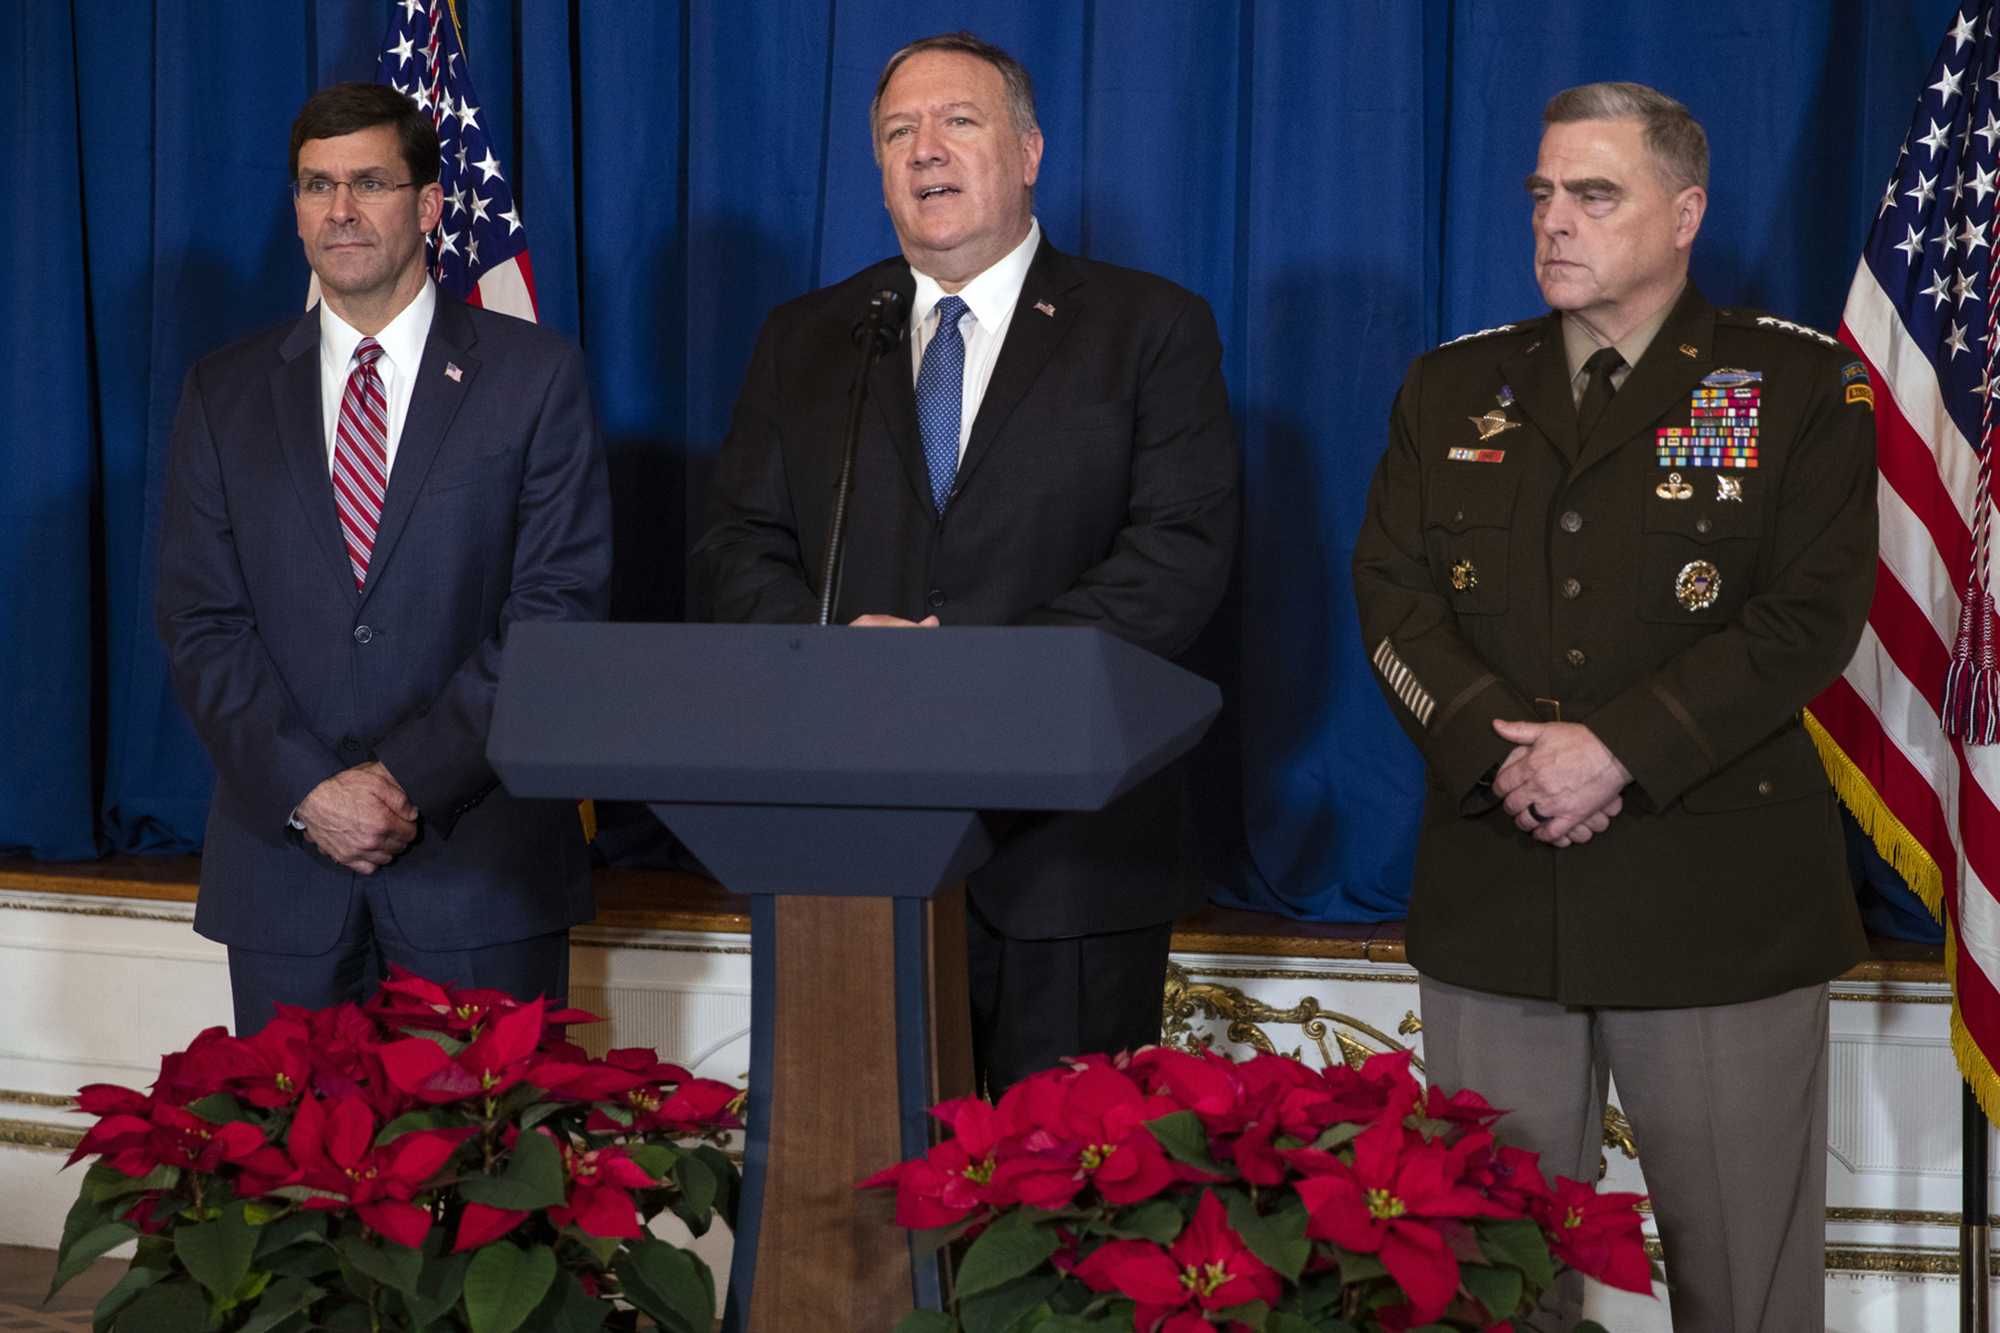 Secretary of Defense Mark Esper, left, and Chairman of the Joint Chiefs of Staff Gen. Mark Milley, right, listen as Secretary of State Mike Pompeo delivers a statement on Iraq and Syria, at President Donald Trump's Mar-a-Lago property, Sunday, Dec. 29, 2019, in Palm Beach, Fla.